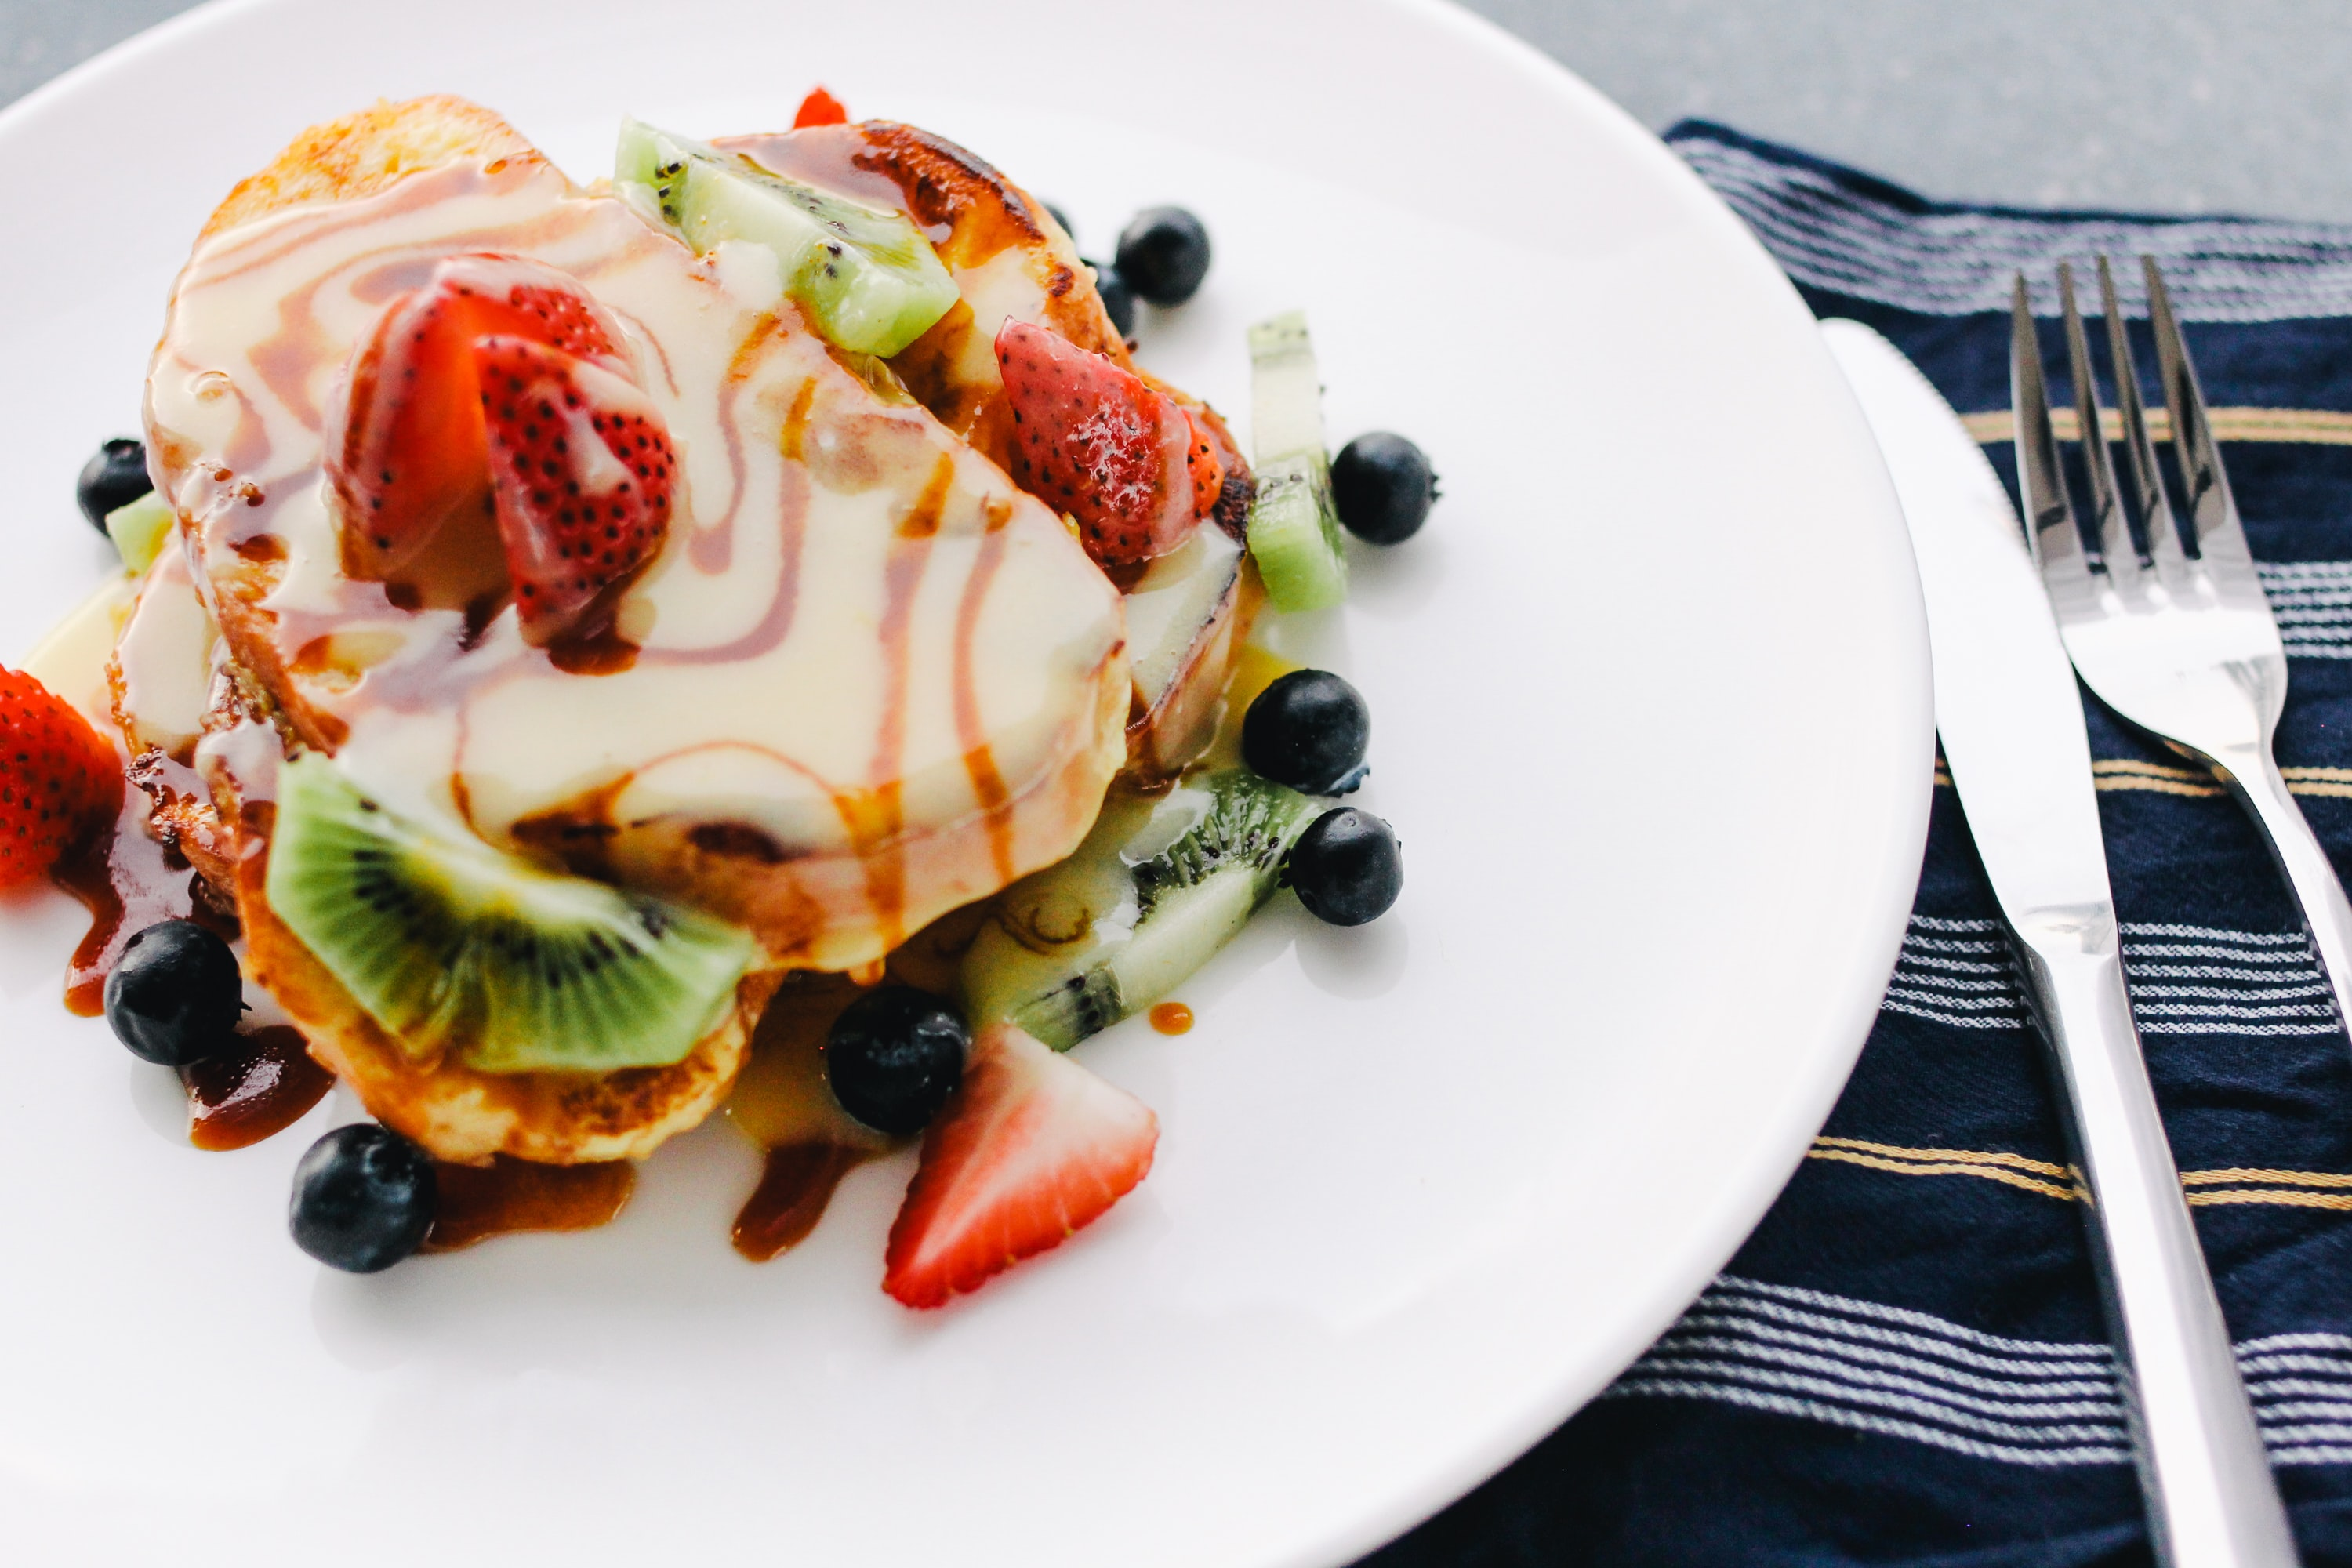 Gourmet french toast with cinnamon glaze and fresh fruit